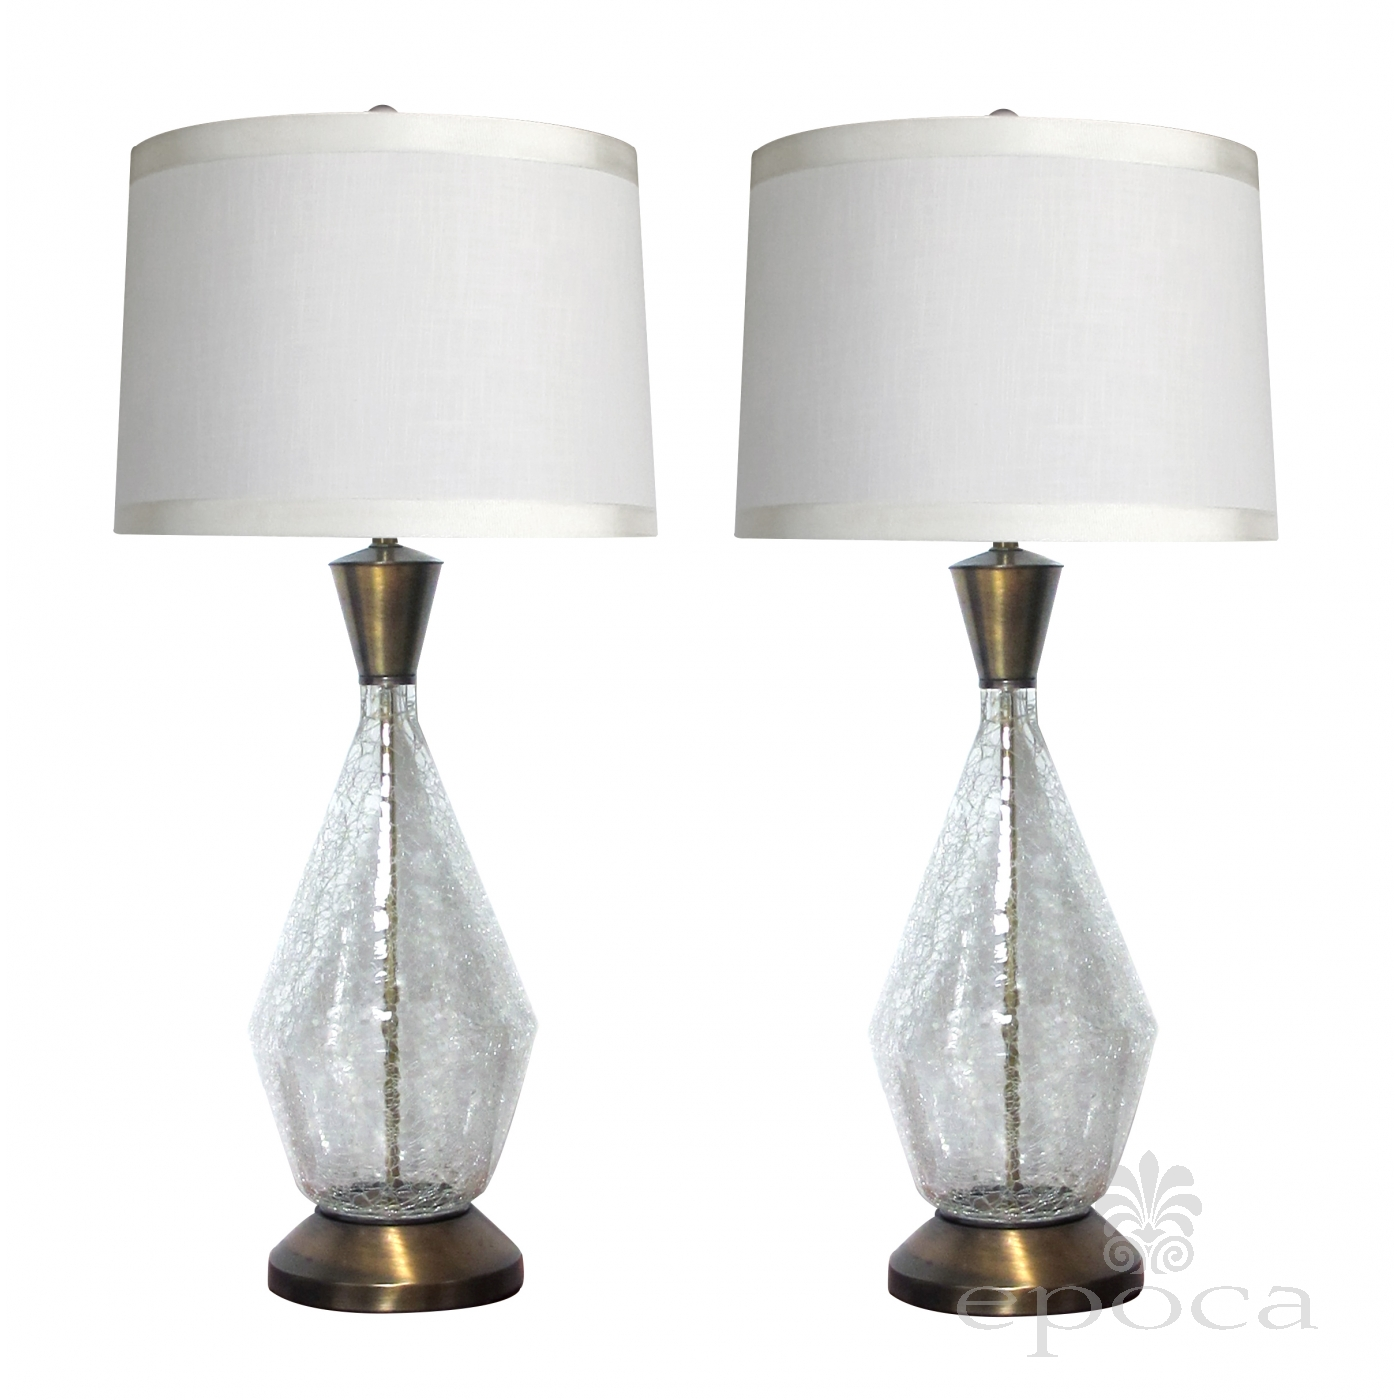 Midcentury Modern Paul Hanson 1960s Clear Crackle Glass Lamps At